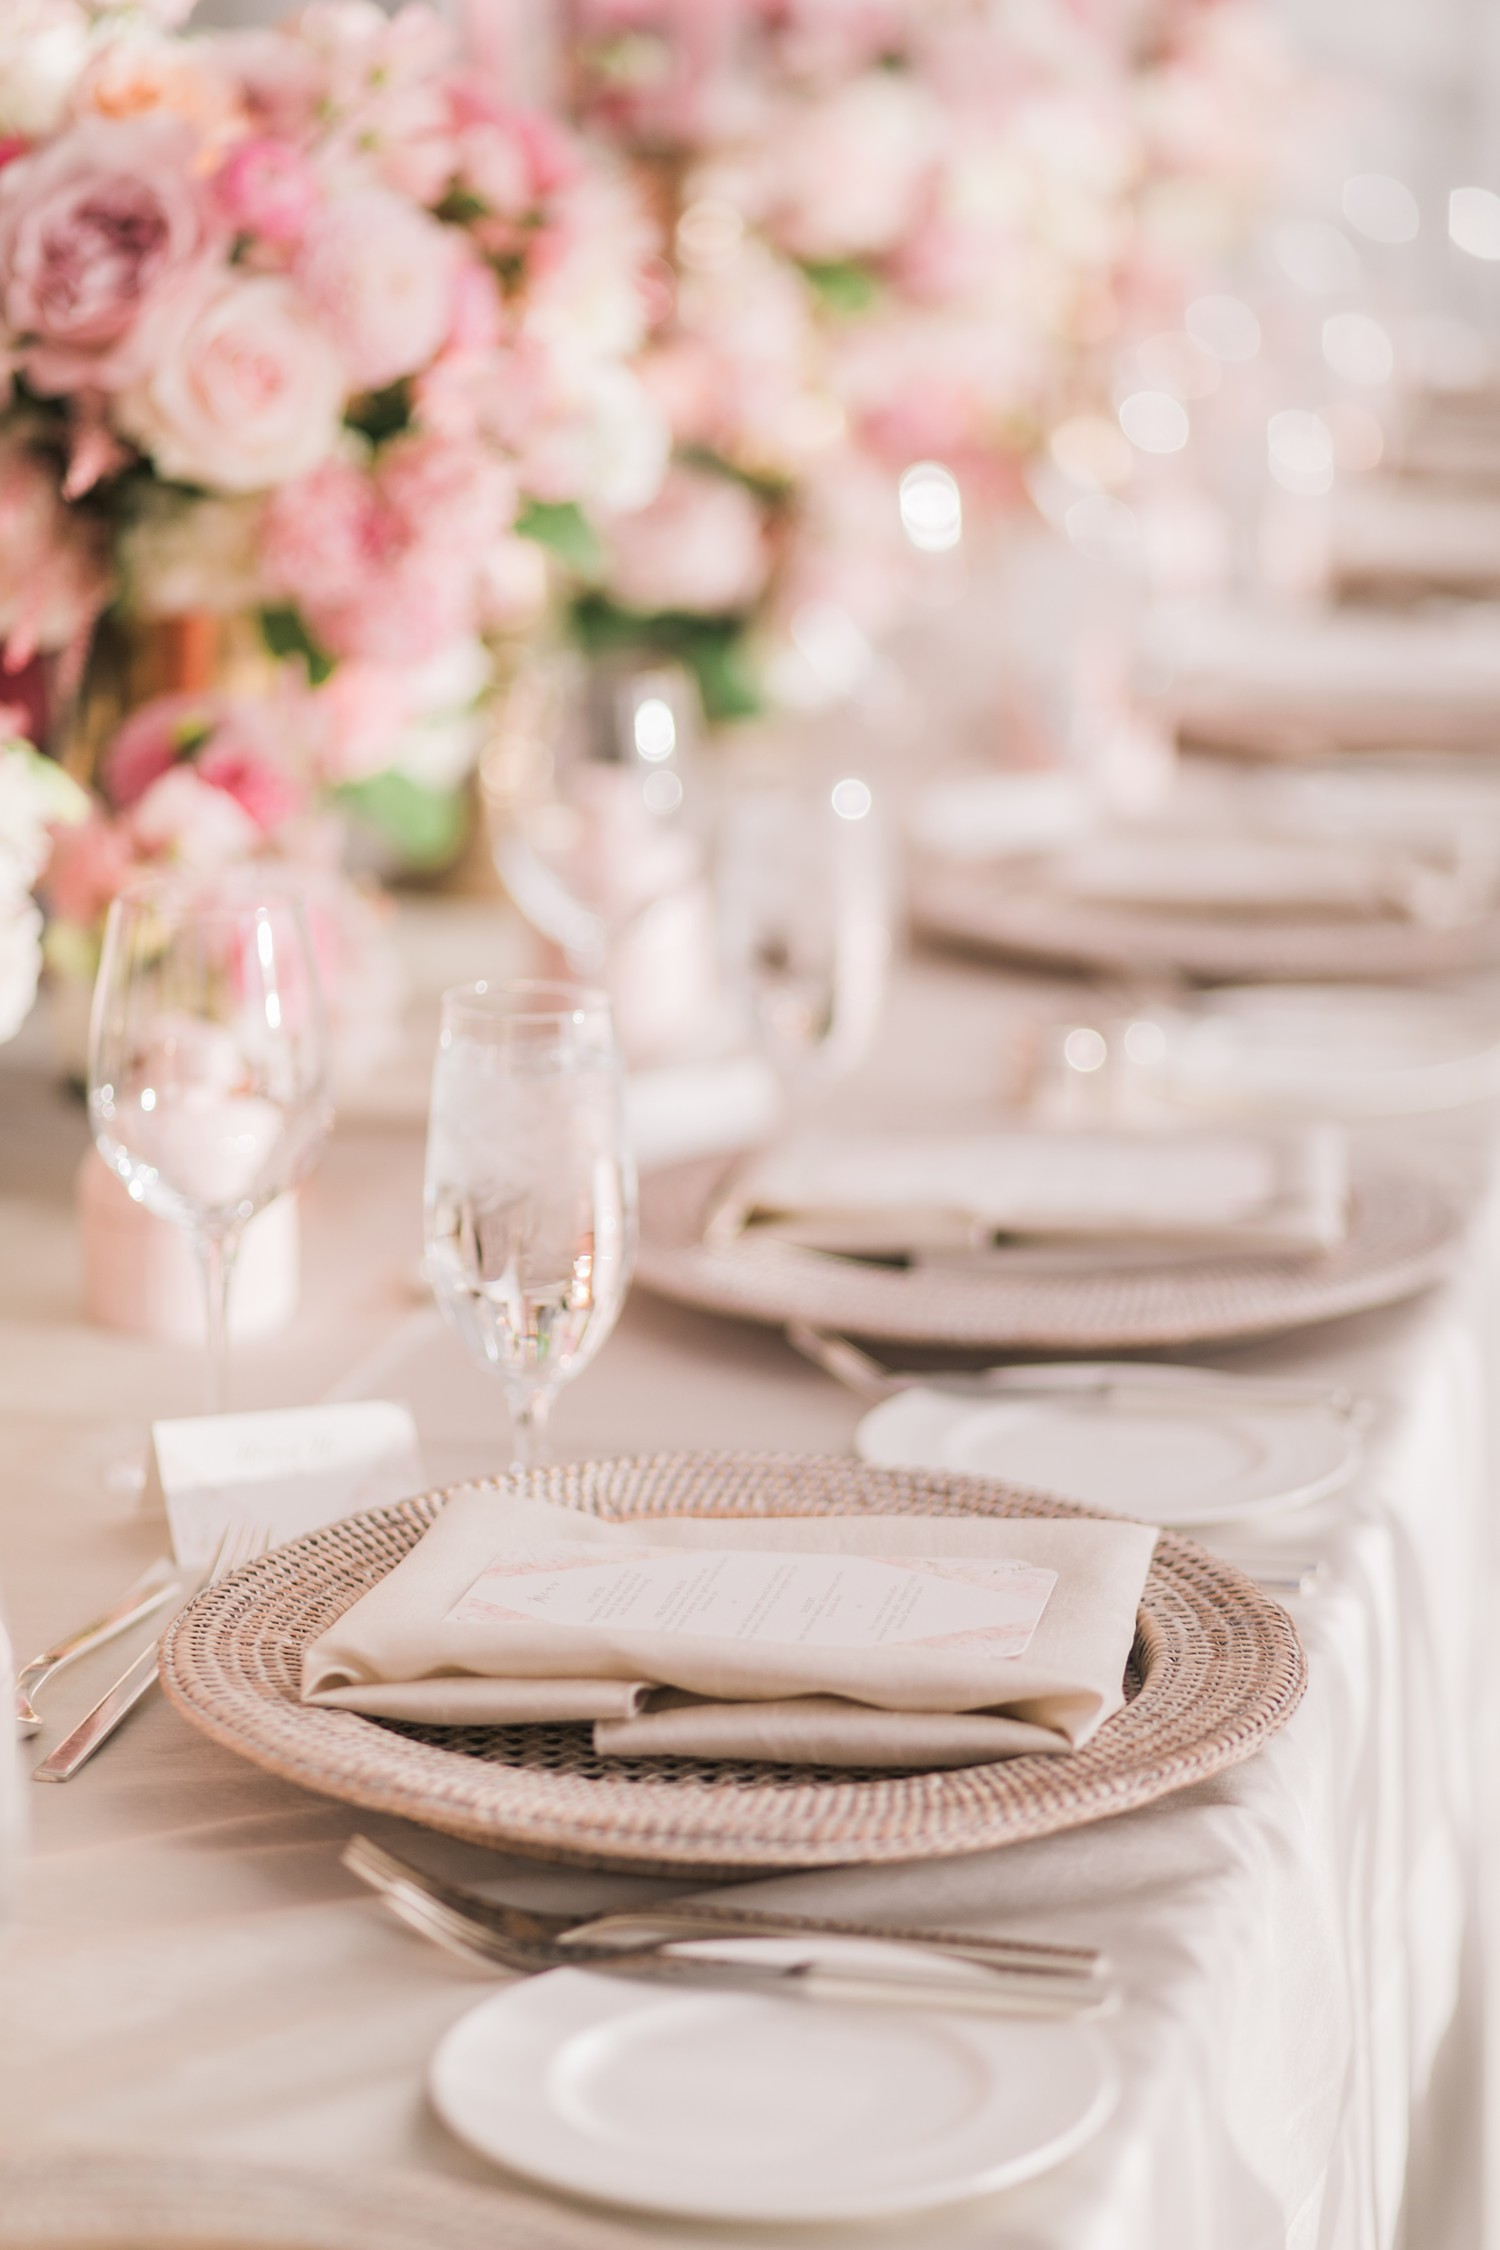 Pink and White Wedding Reception Decor Vinci Room Luxury Yorkville Toronto Four Season Hotel Wedding Photos with Chinese Bride and Groom